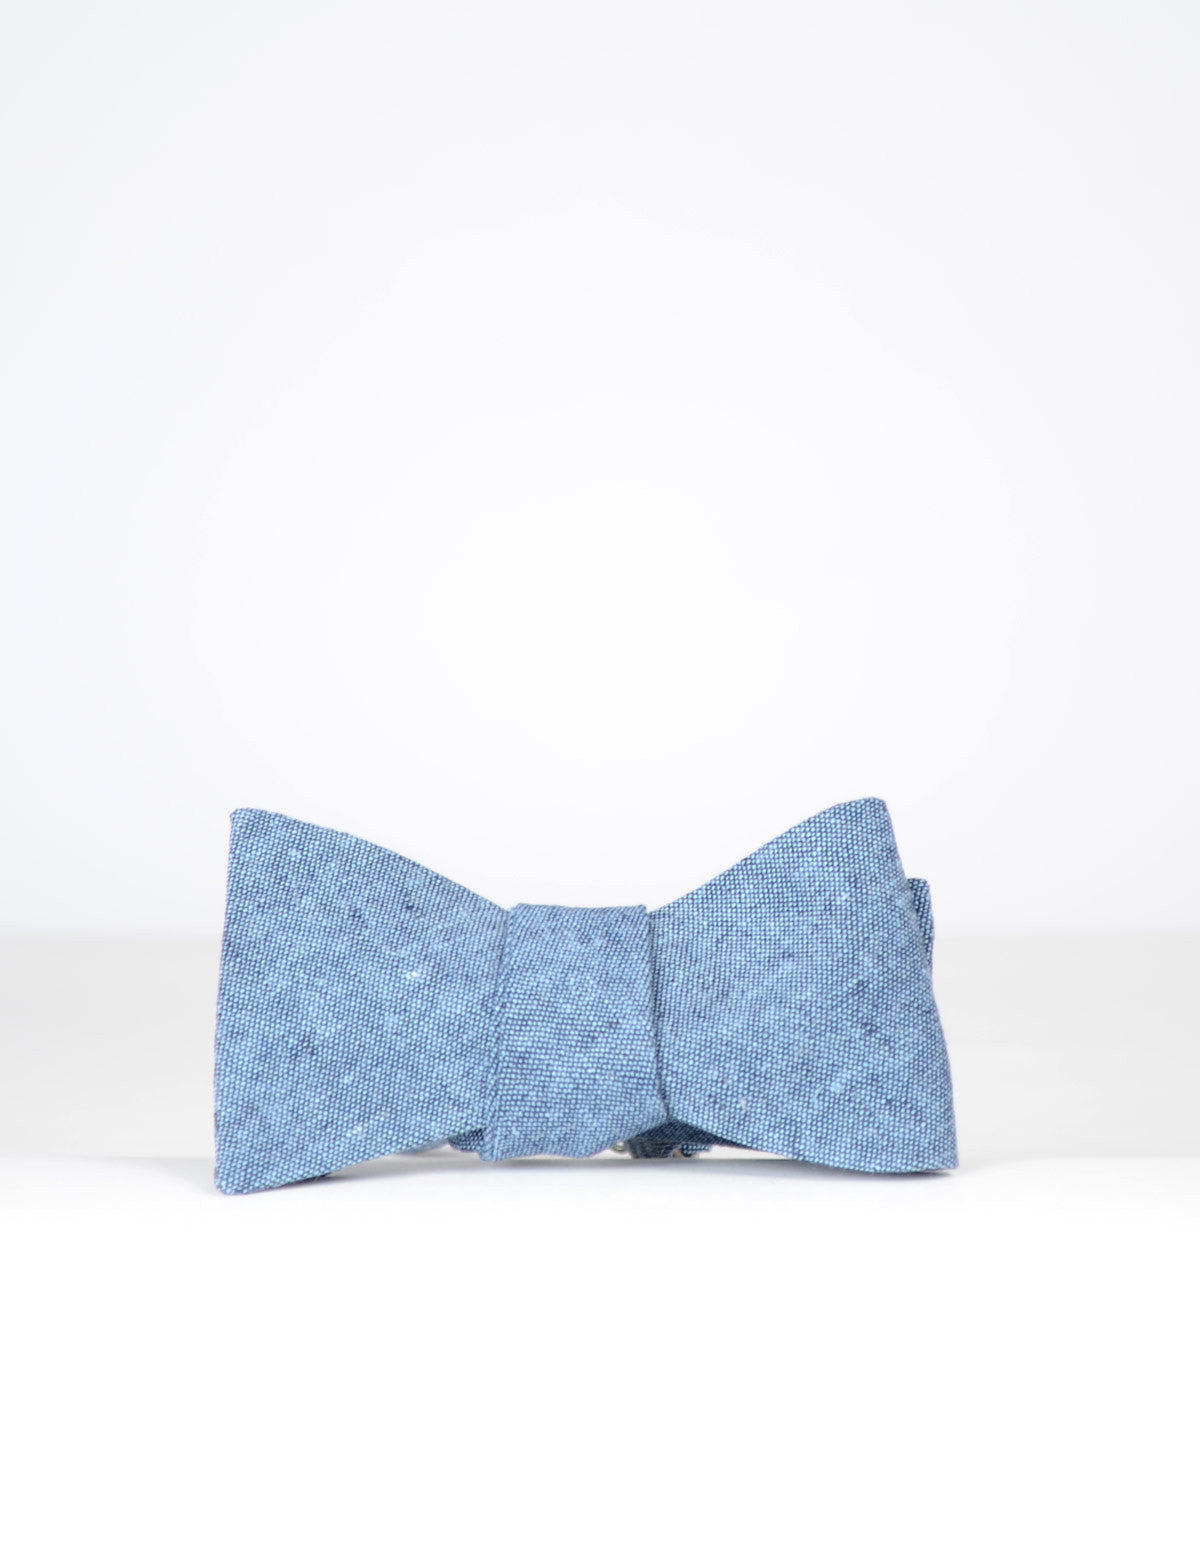 Cursor and Thread Salt and Pepper Bow Tie Indigo - Still Life